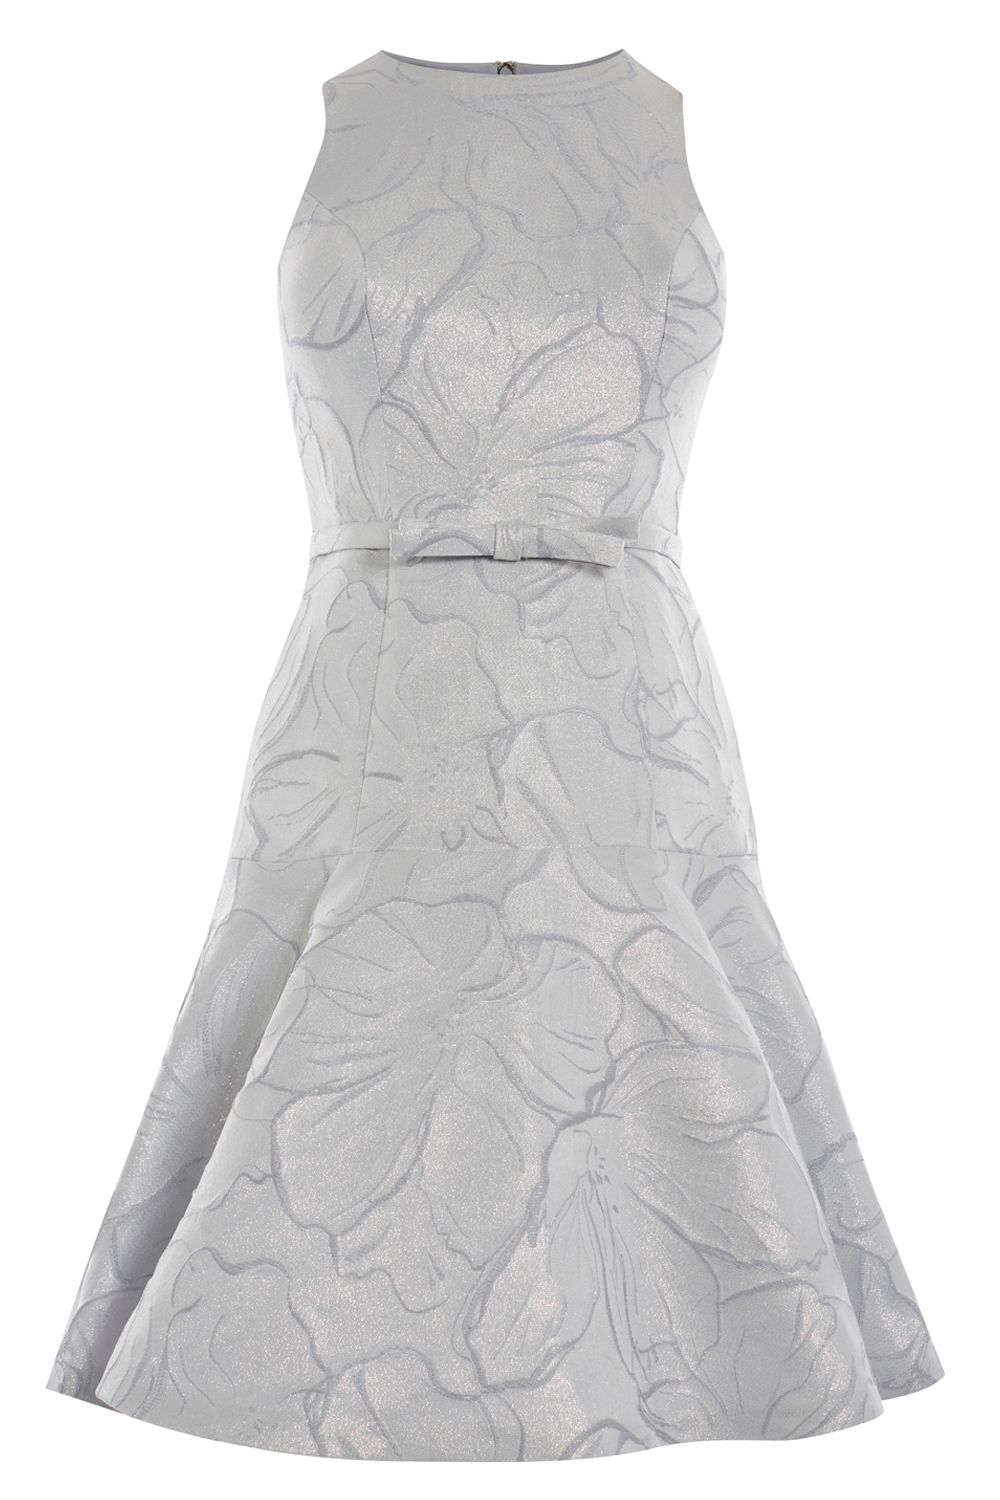 Coast Francesca Dress, Silver